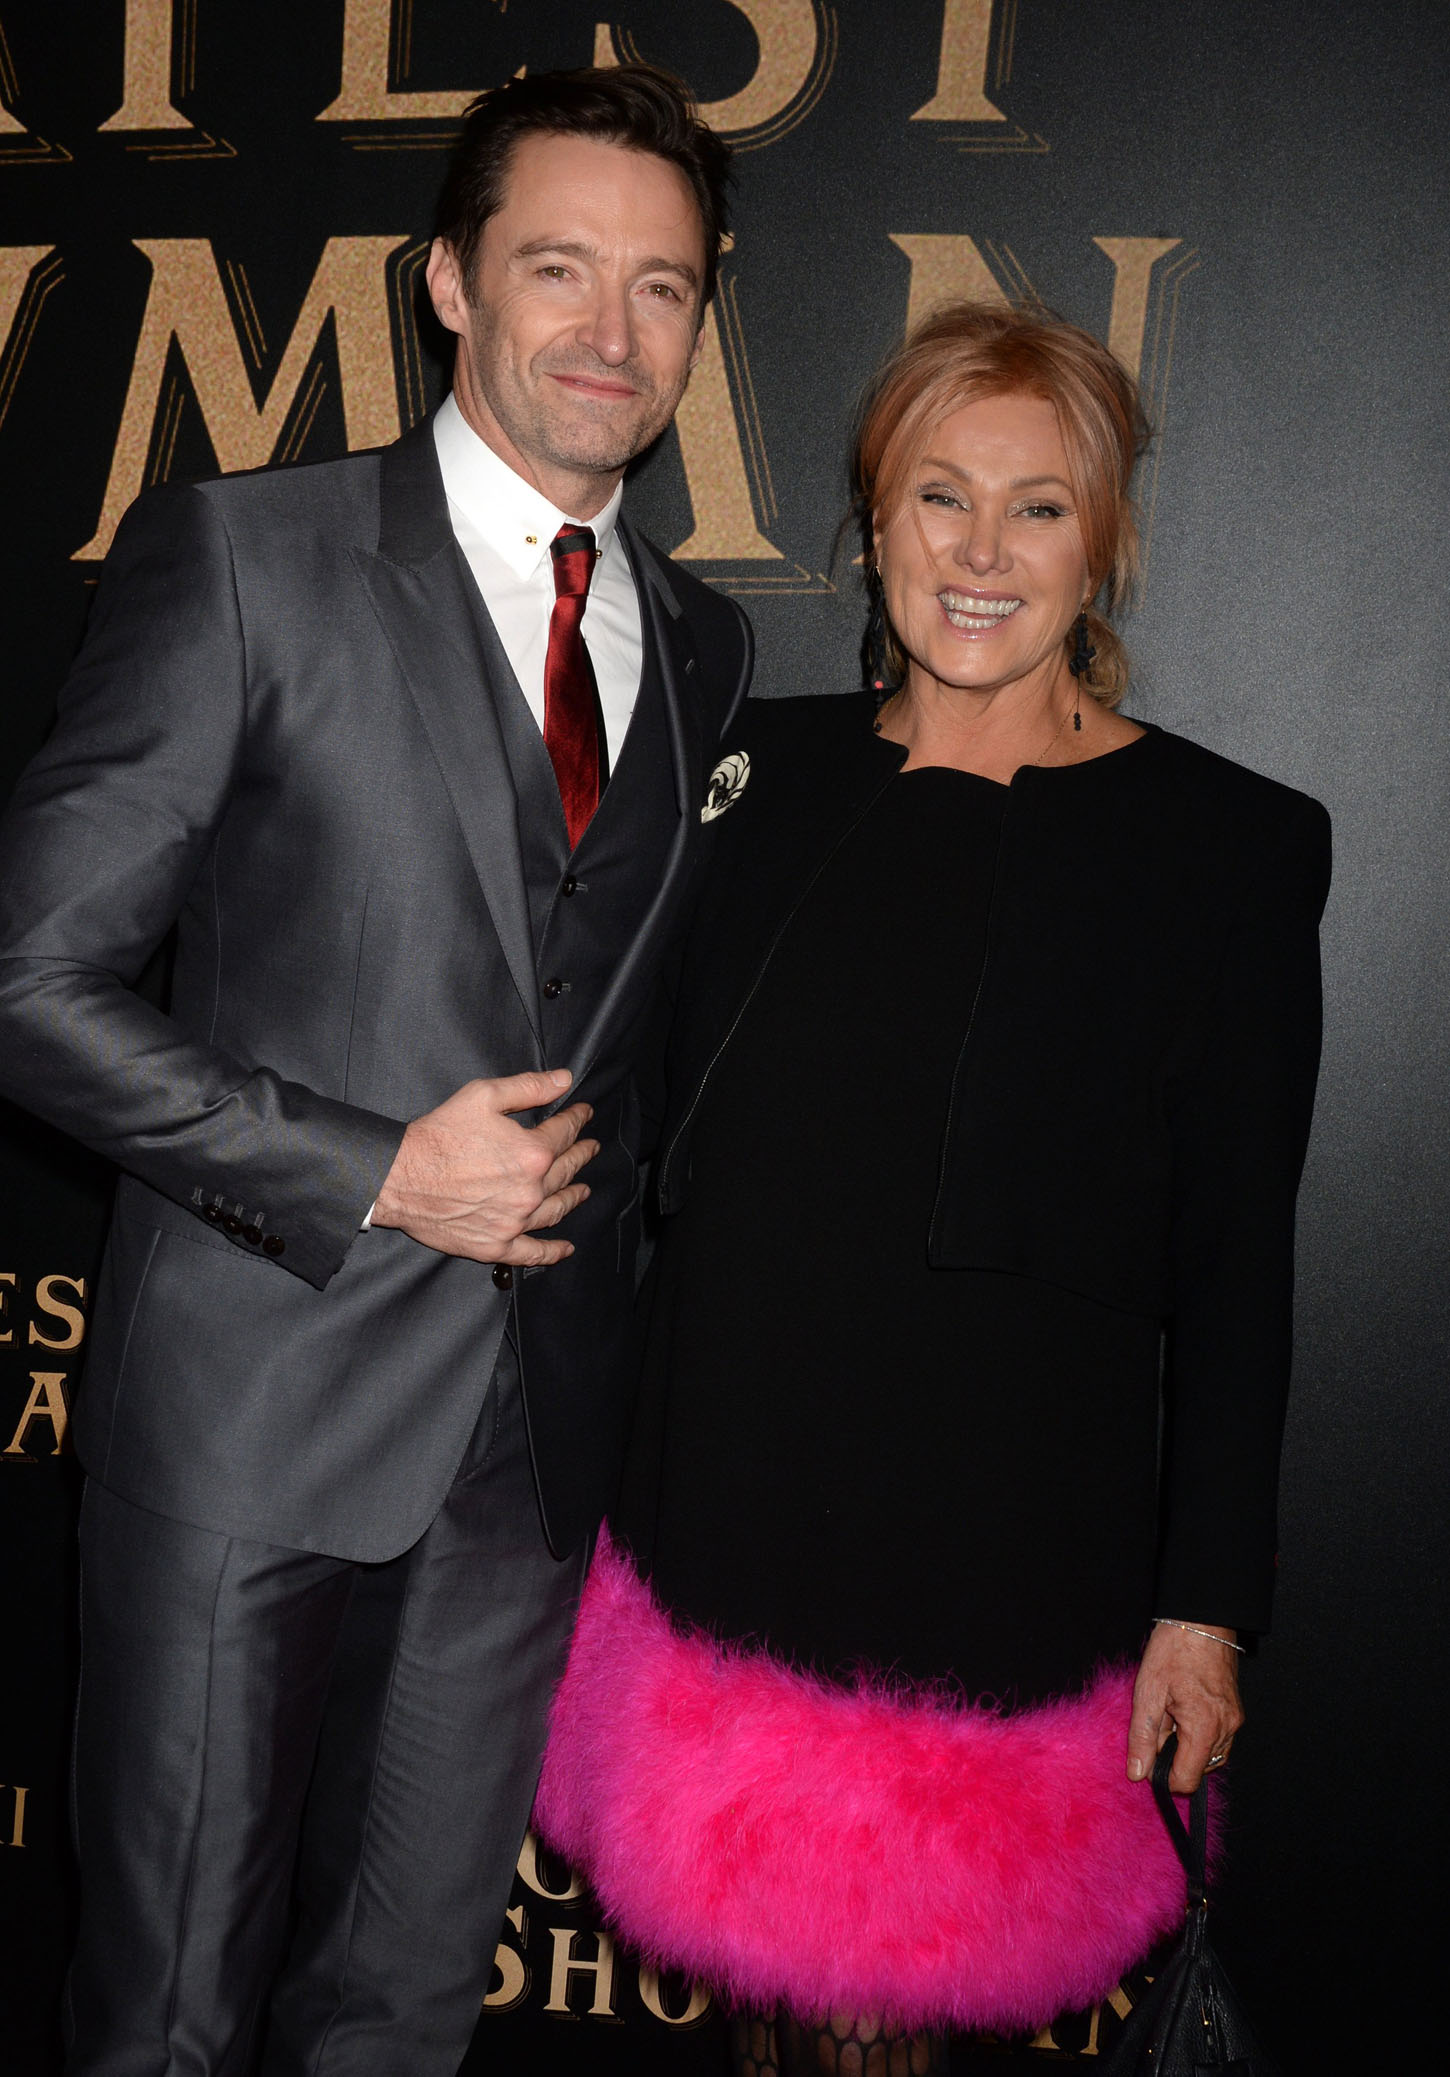 Deborra-lee Furness and Hugh Jackman arrive on the red carpet at the 'The Greatest Showman' World Premiere aboard the Queen Mary 2 at the Brooklyn Cruise Terminal on December 8, 2017 in New York City.     Photo by /UPI, Image: 357341091, License: Rights-managed, Restrictions: , Model Release: no, Credit line: Profimedia, UPI